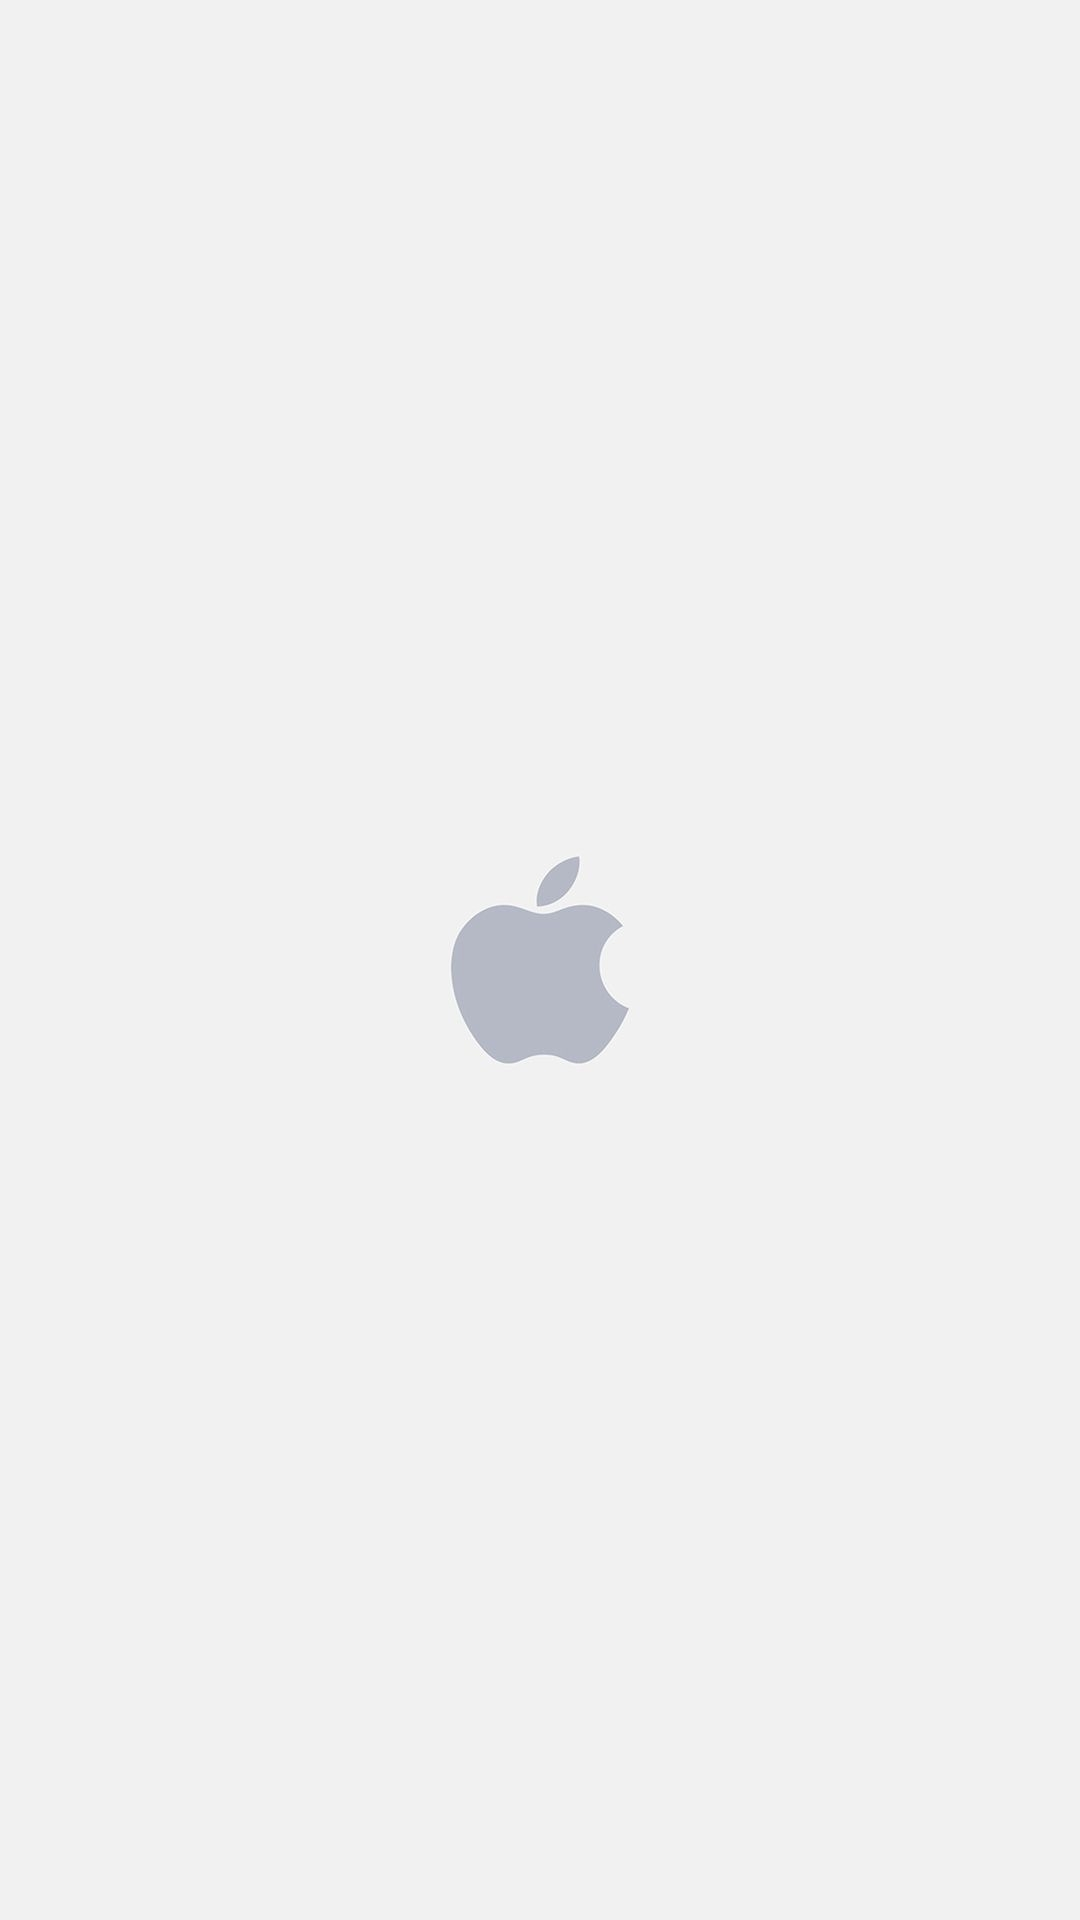 apple logo white art illustration #iphone #7 #wallpaper | iphone 8